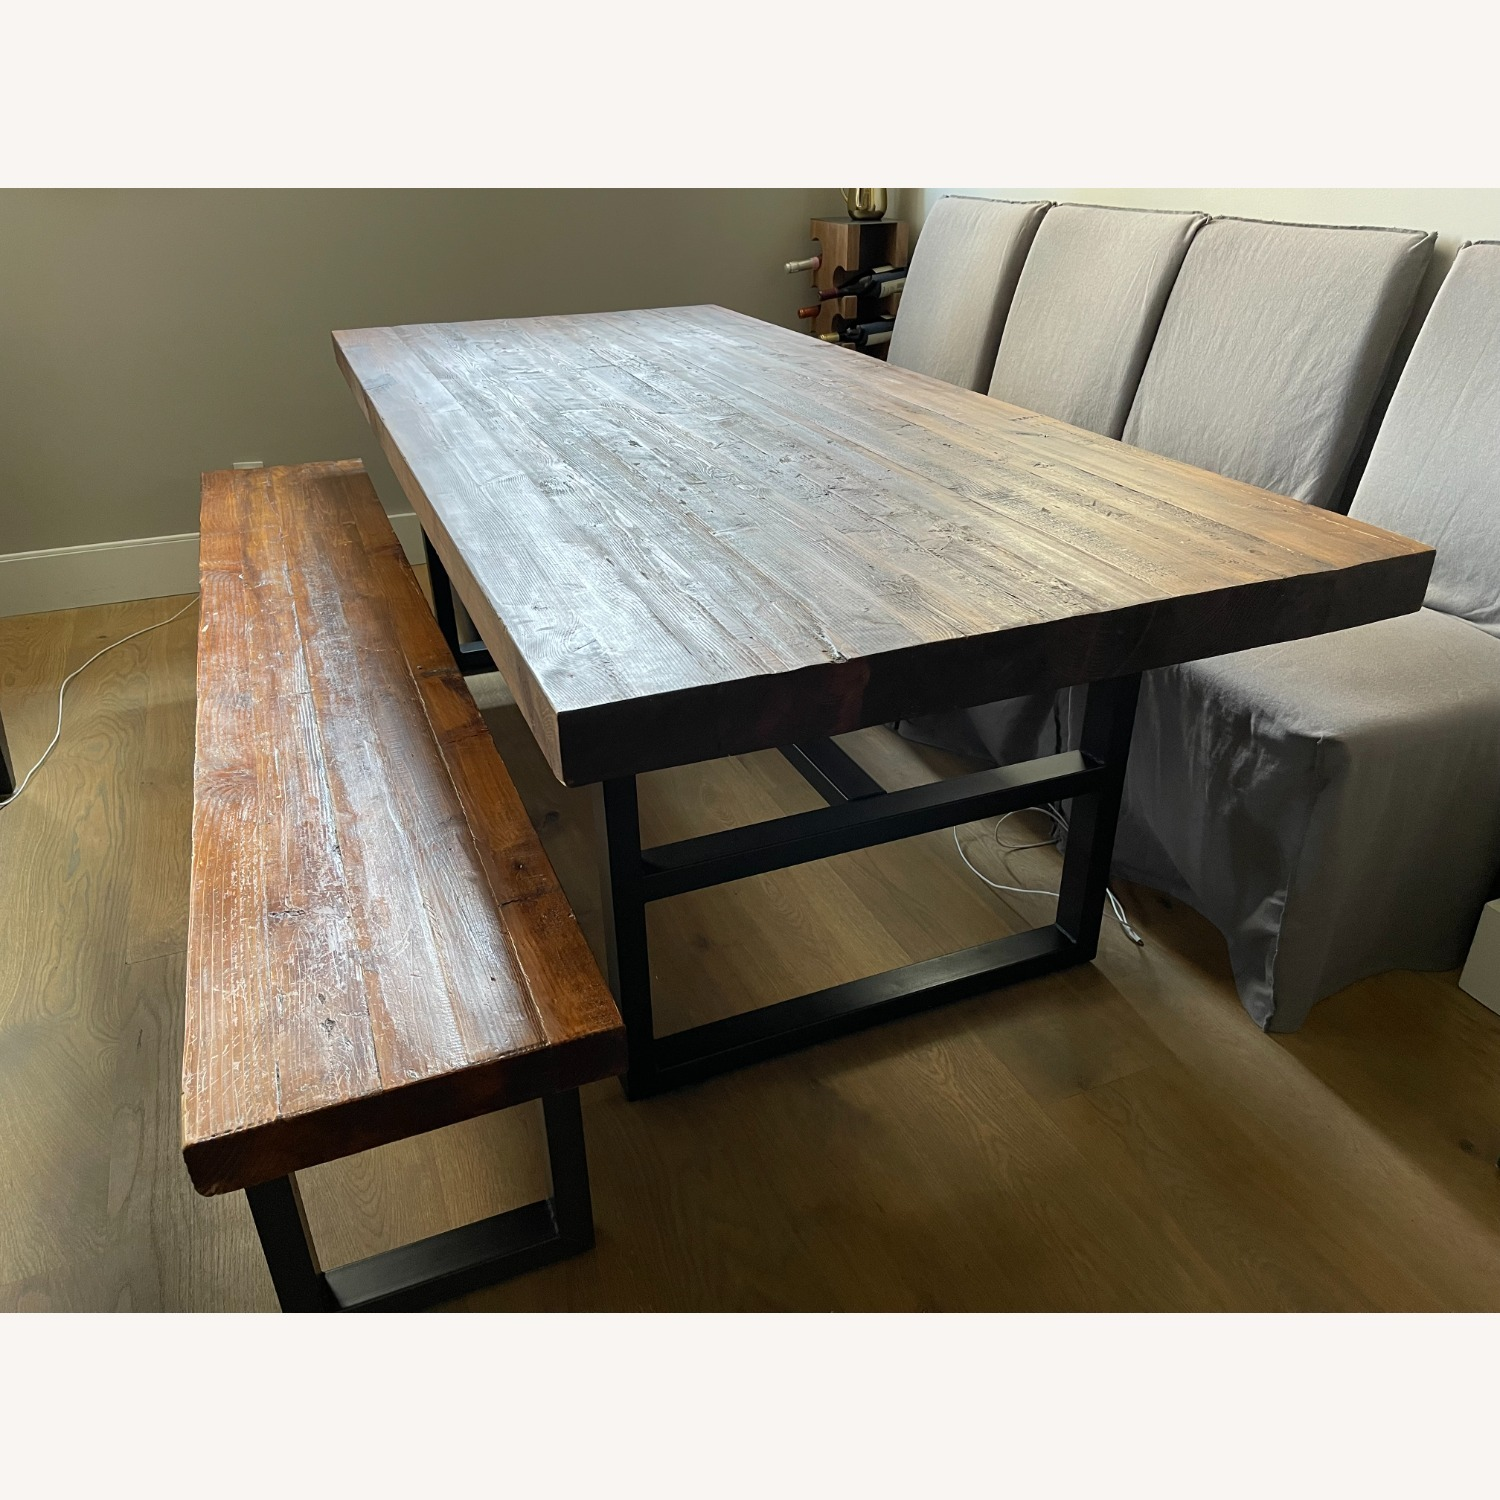 Pottery Barn Griffin Reclaimed Wood Dining Table - image-1